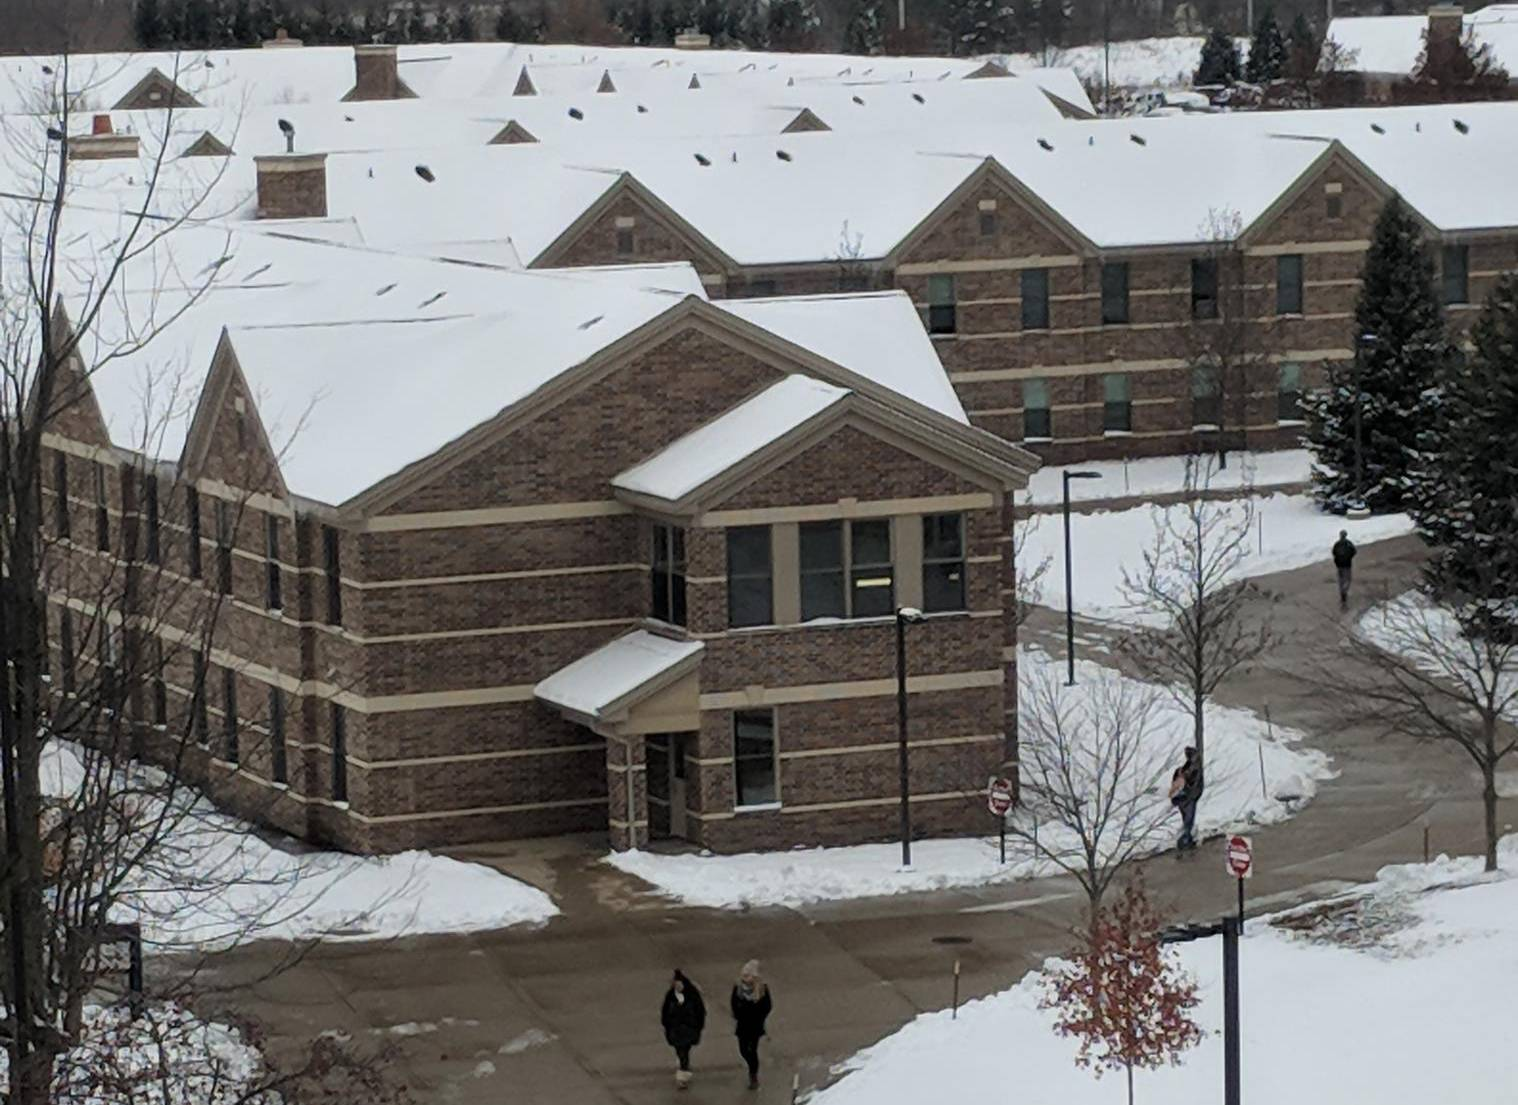 Snow on the living center roofs